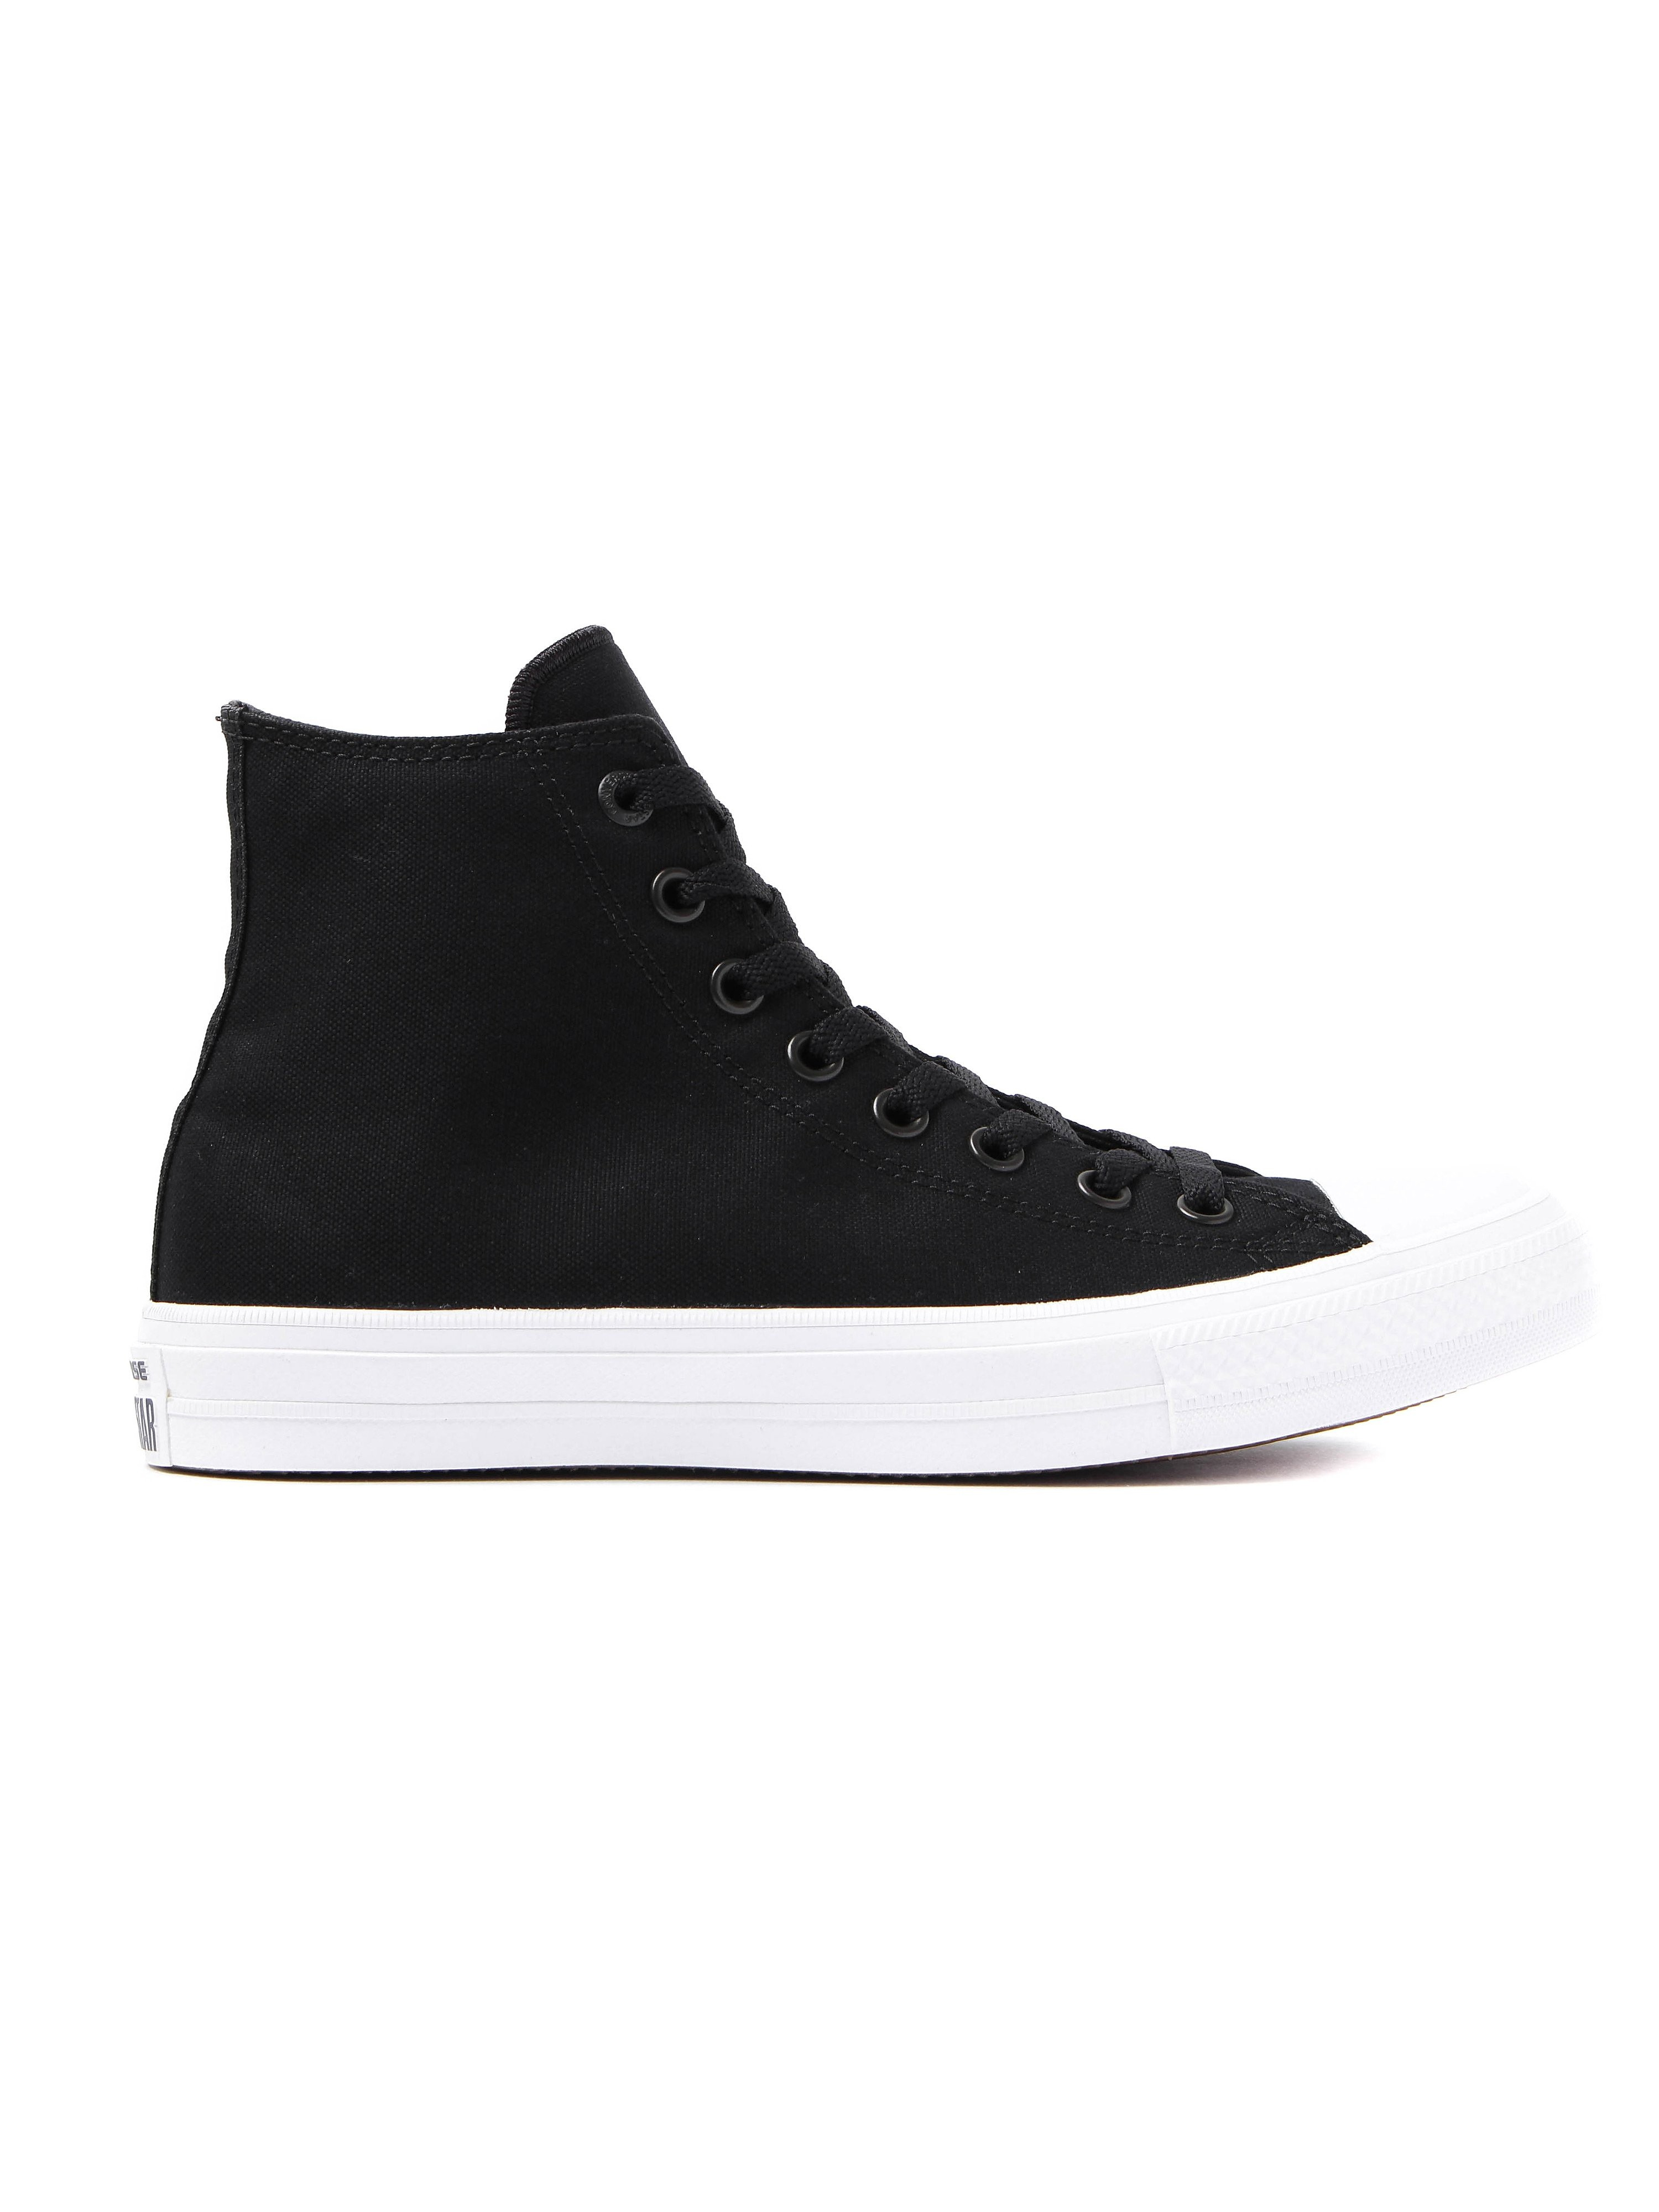 Converse Women's Chuck Taylor All Star II HI Trainers - Black